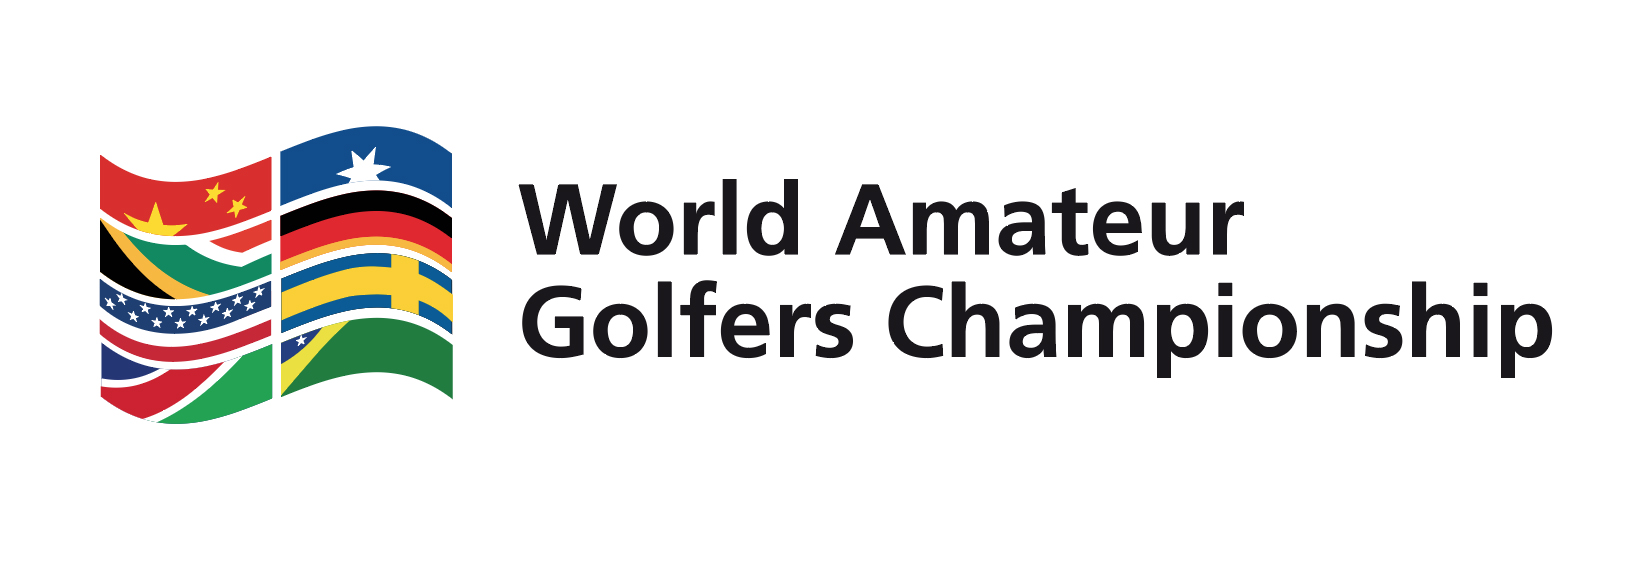 Are you ready to represent new zealand in the world amateur golfers championship and be the world's best in your handicap flight (division)?